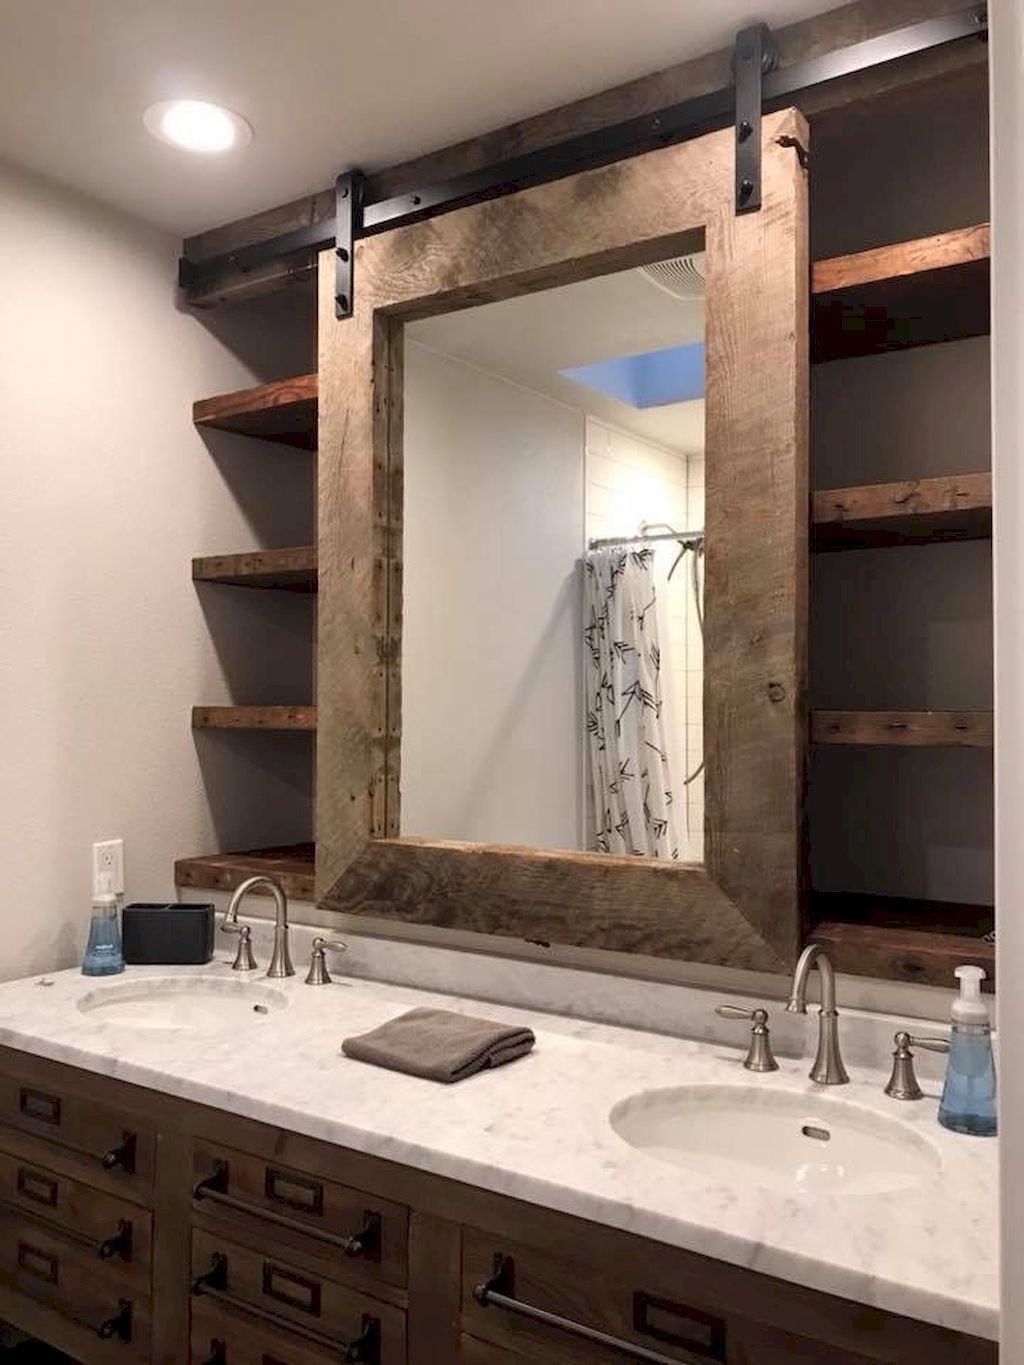 21 Best Bathroom Mirror Ideas To Reflect Your Style Idee Bagno Rustico Arredamento Bagno Case Da Sogno